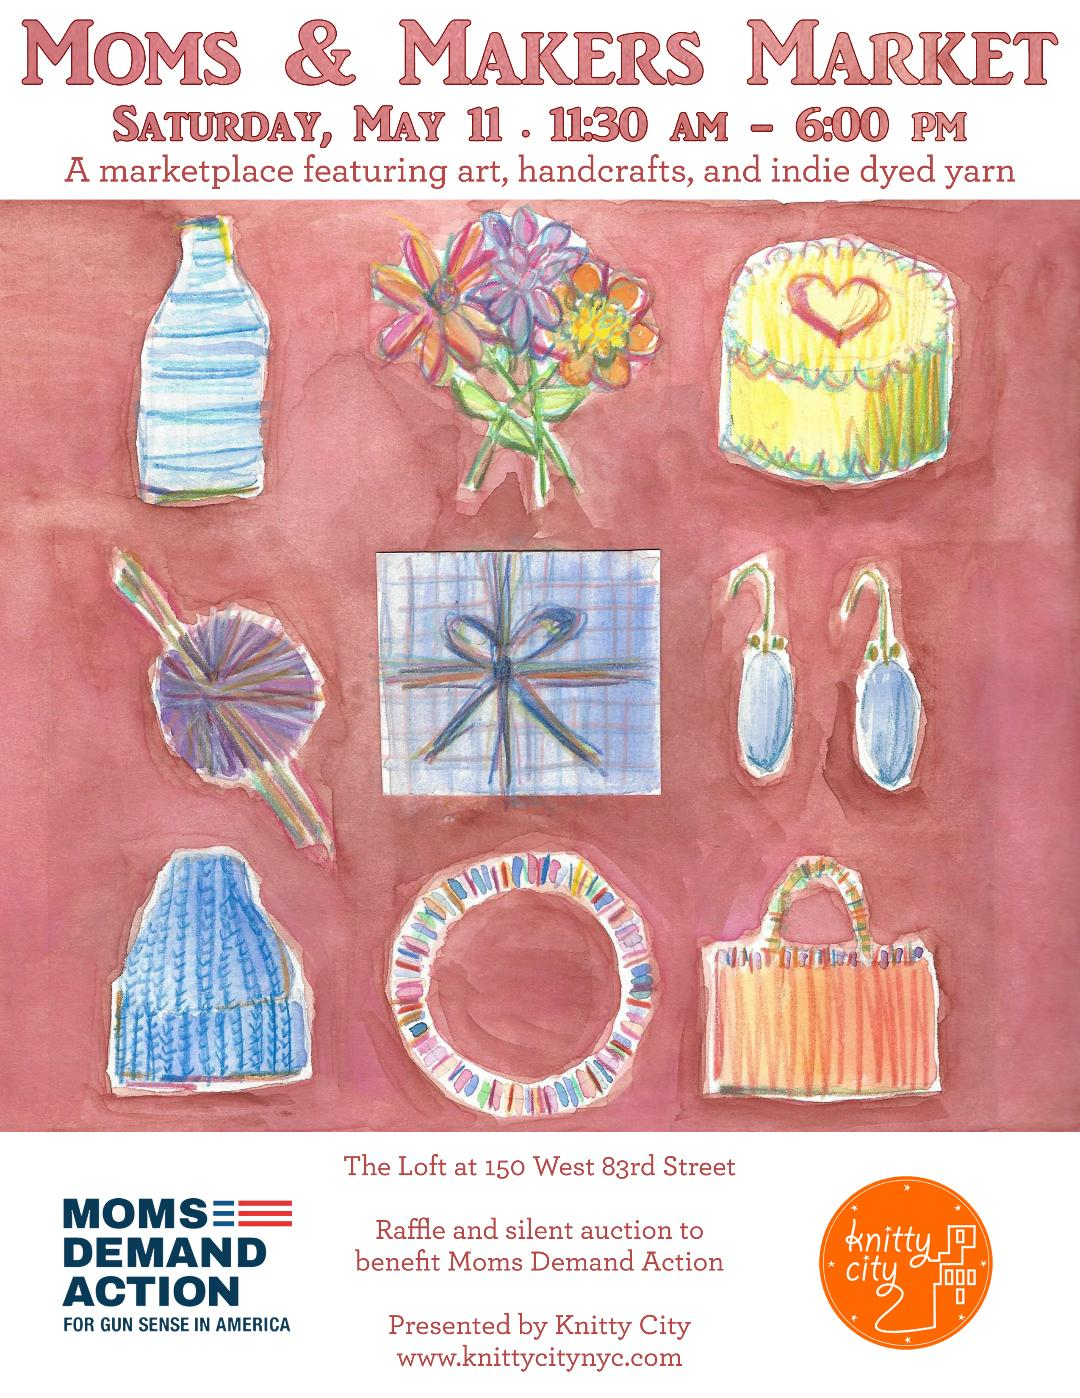 Moms & Makers poster